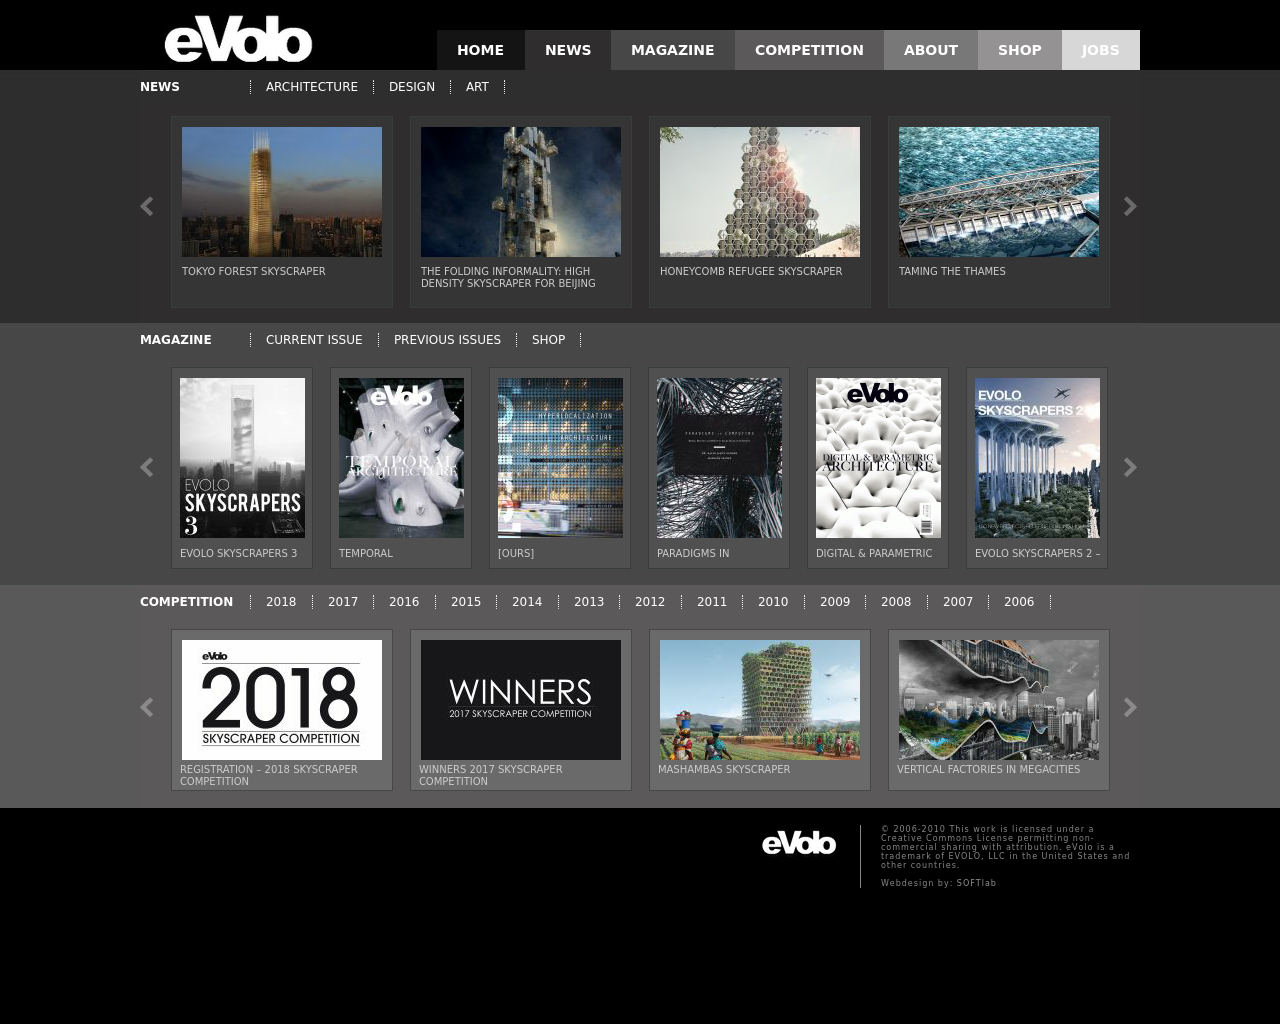 eVolo-Advertising-Reviews-Pricing